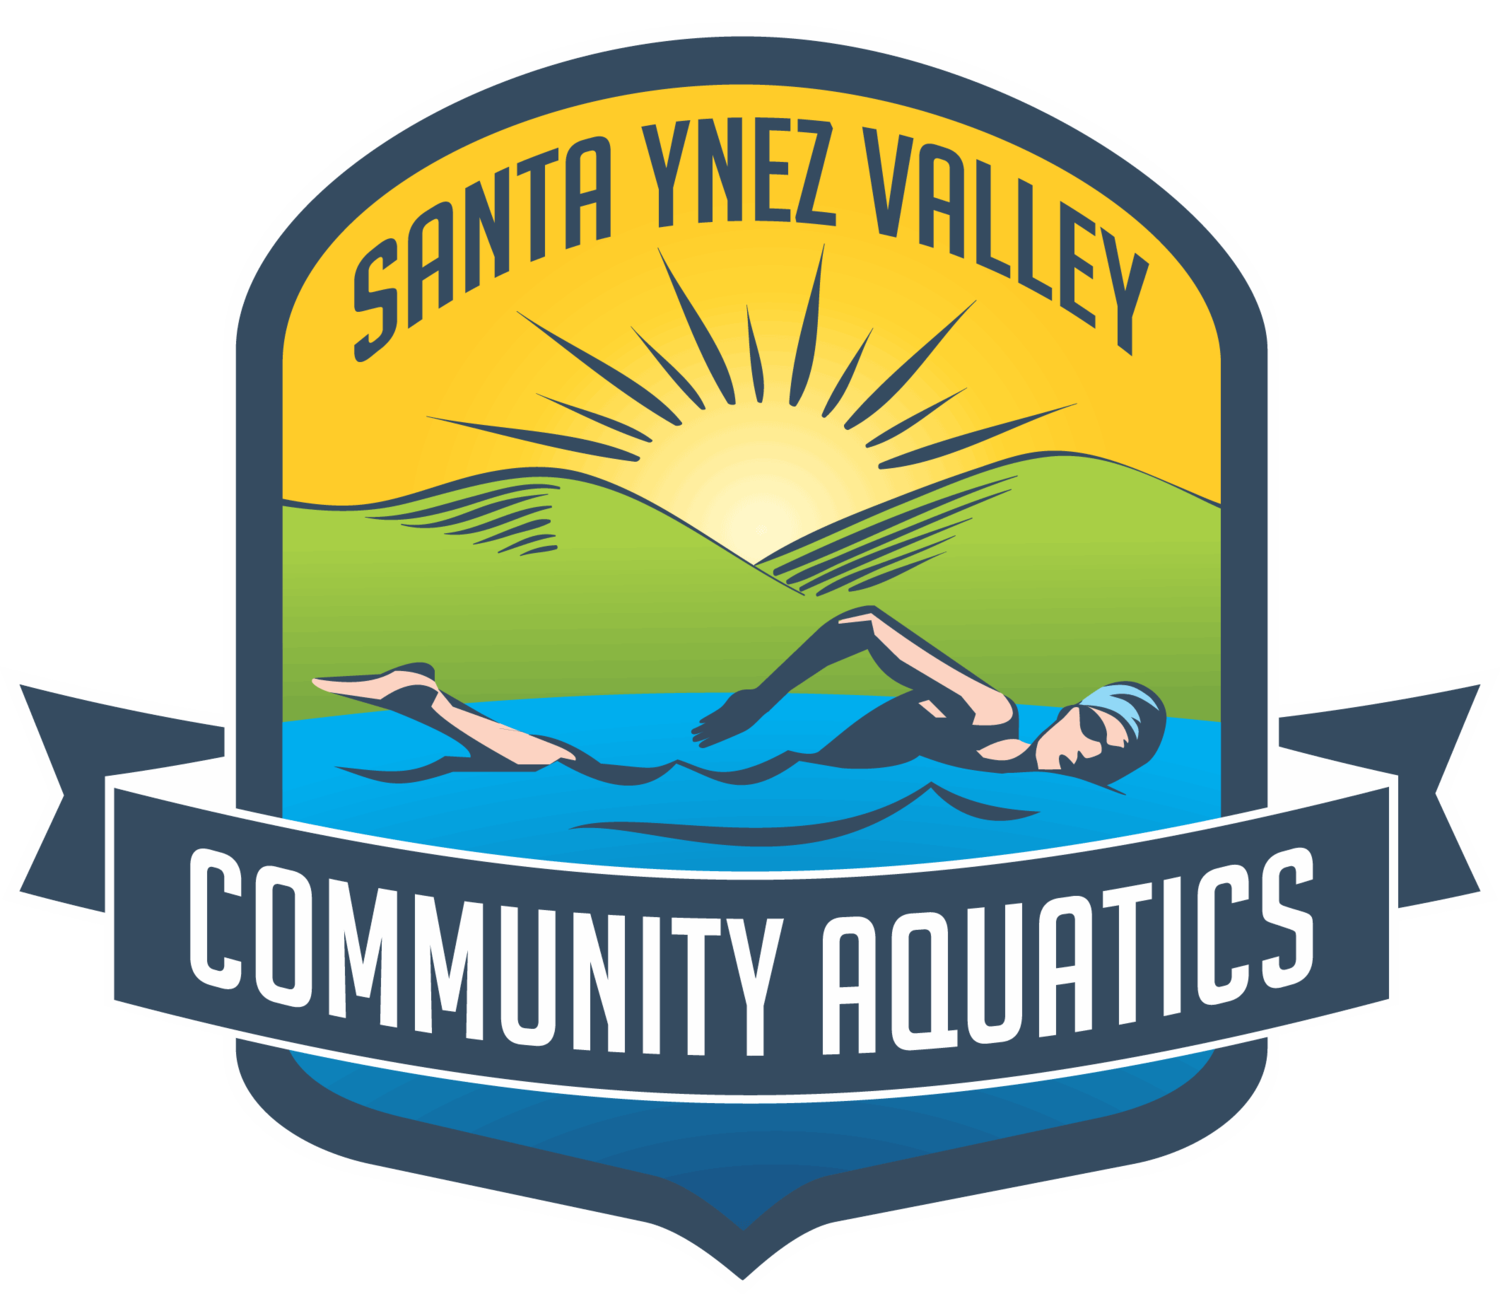 Santa Ynez Valley Community Aquatics